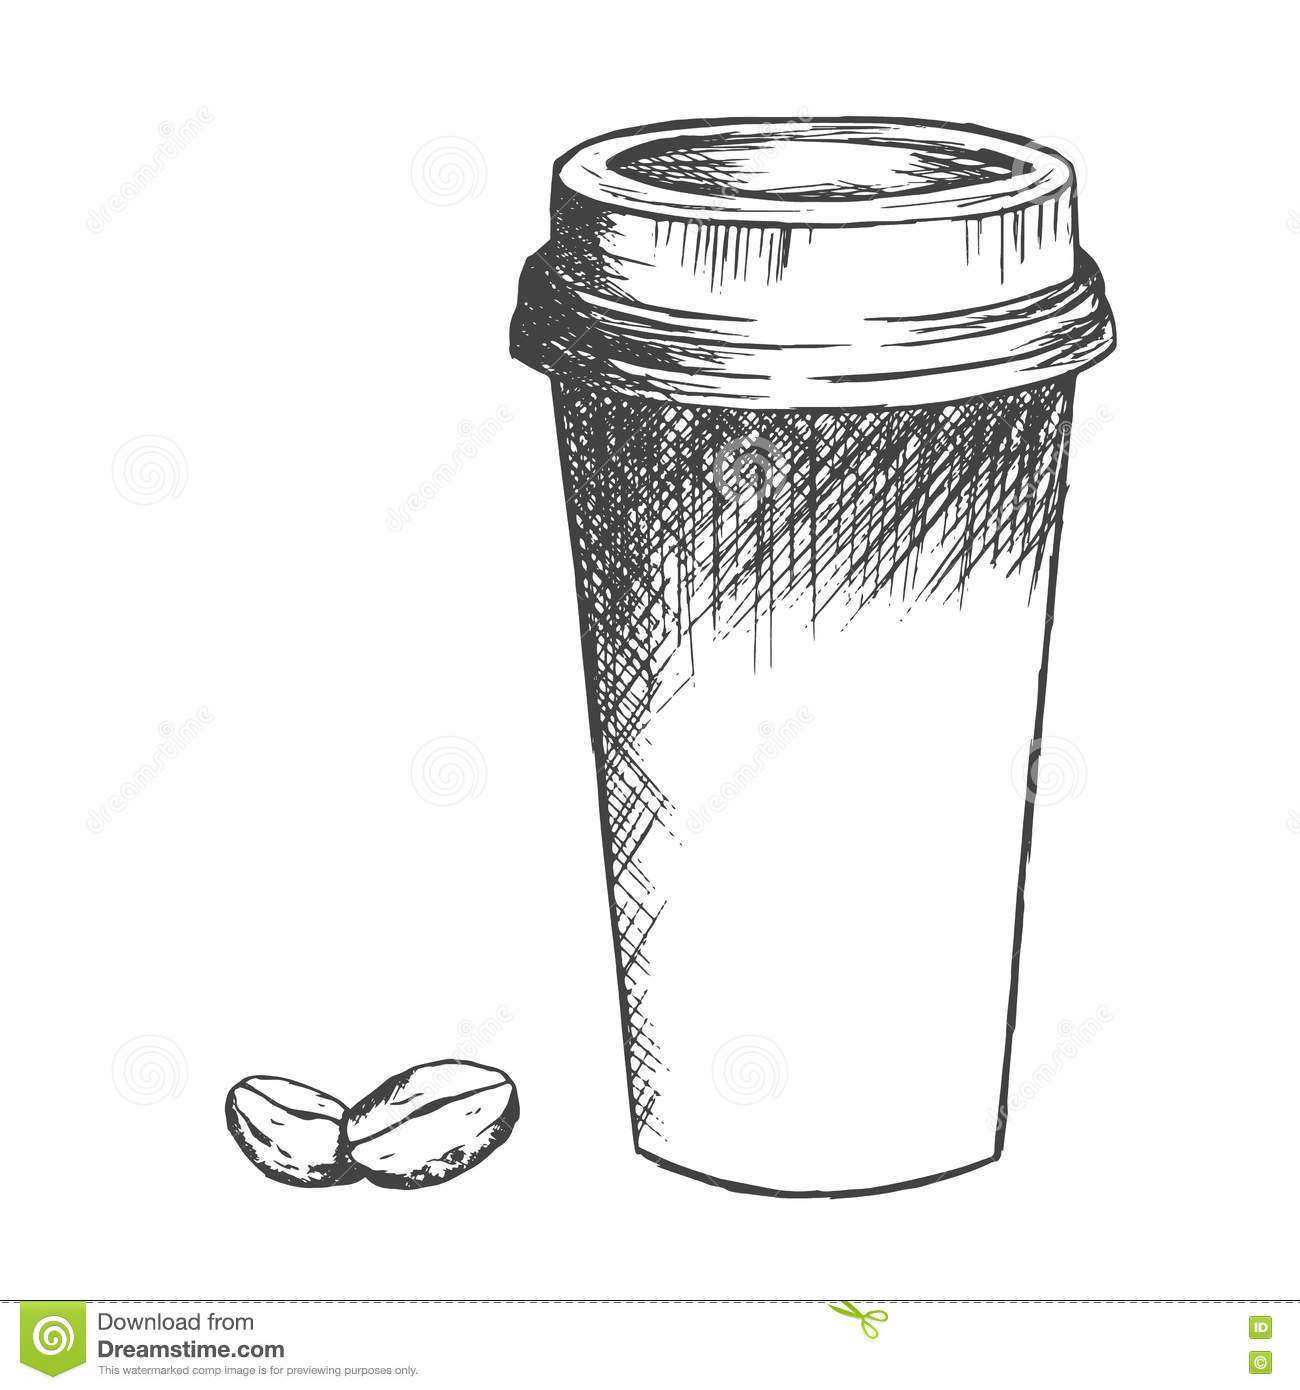 Coffee cup sketch - Royalty Free Vector Download Take Away Coffee Cup And Beans Sketch